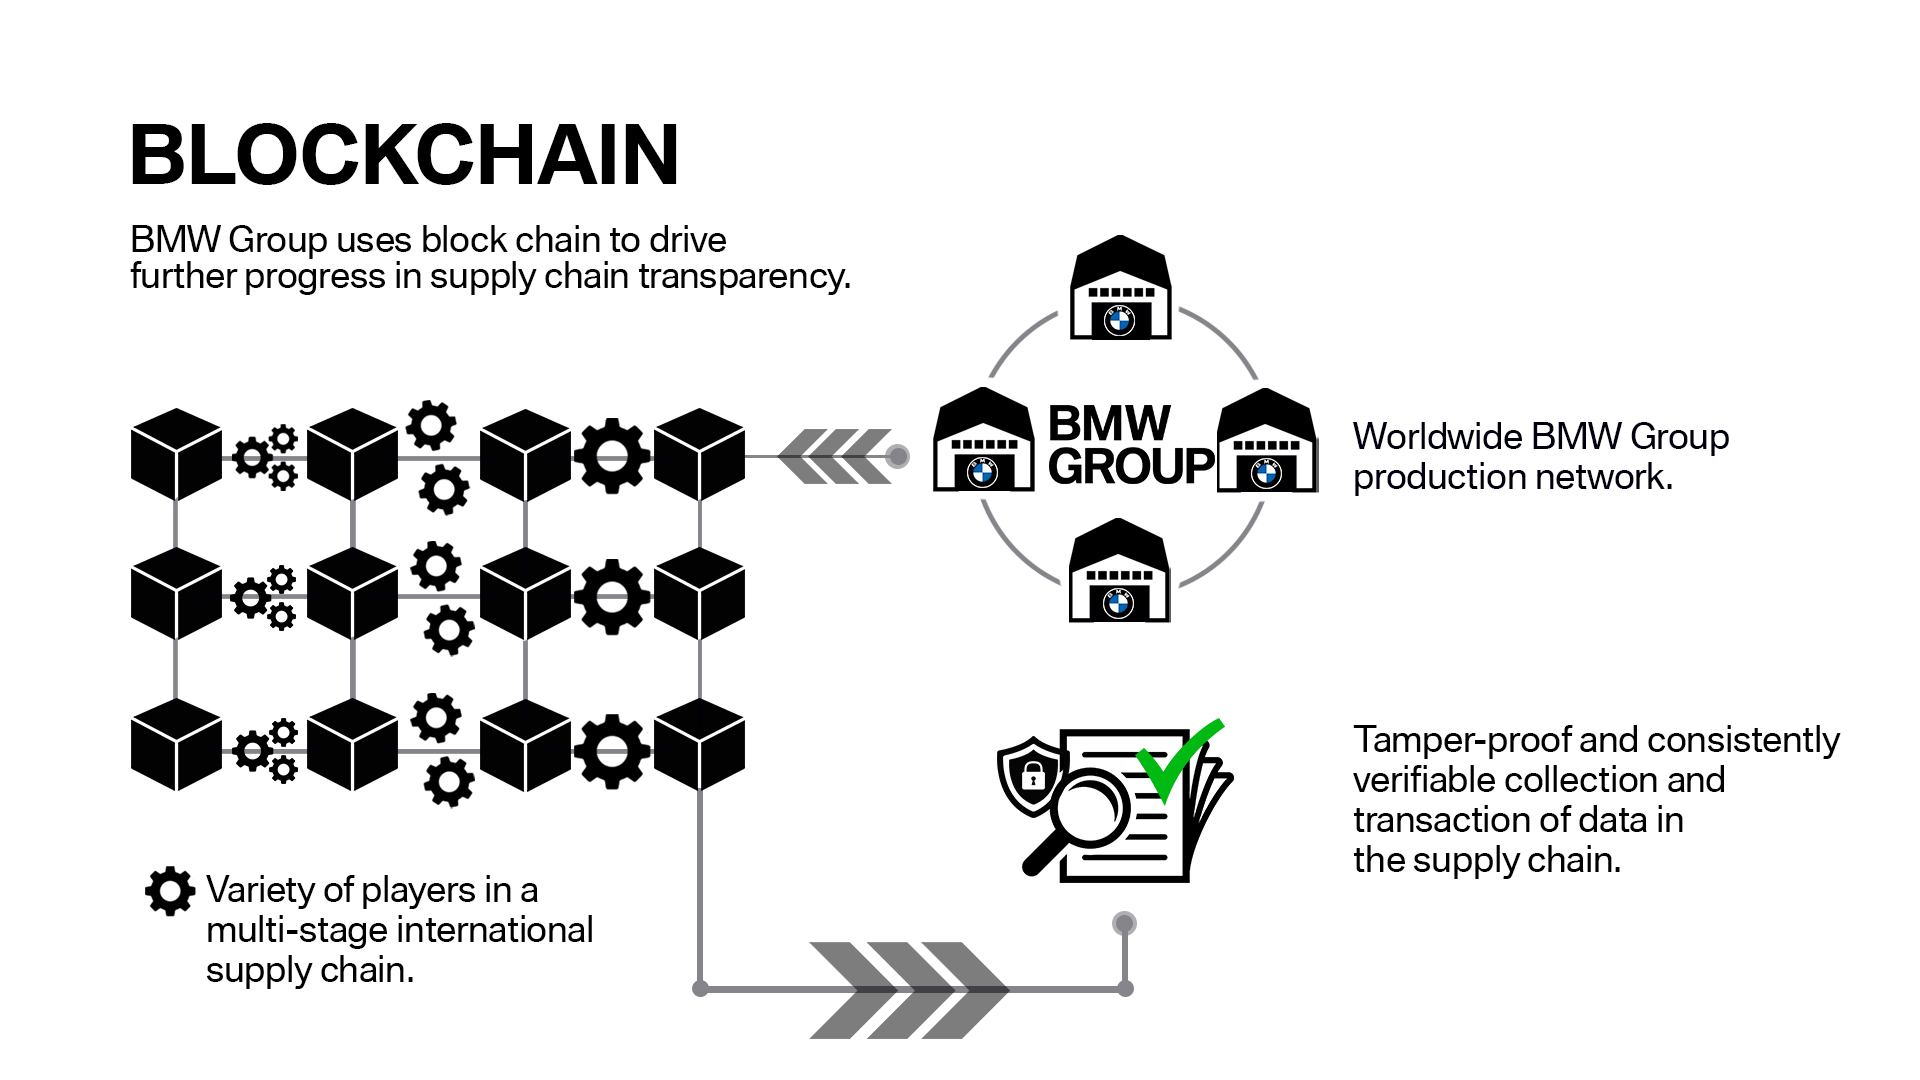 BMW Group uses Blockchain to drive supply chain transparency